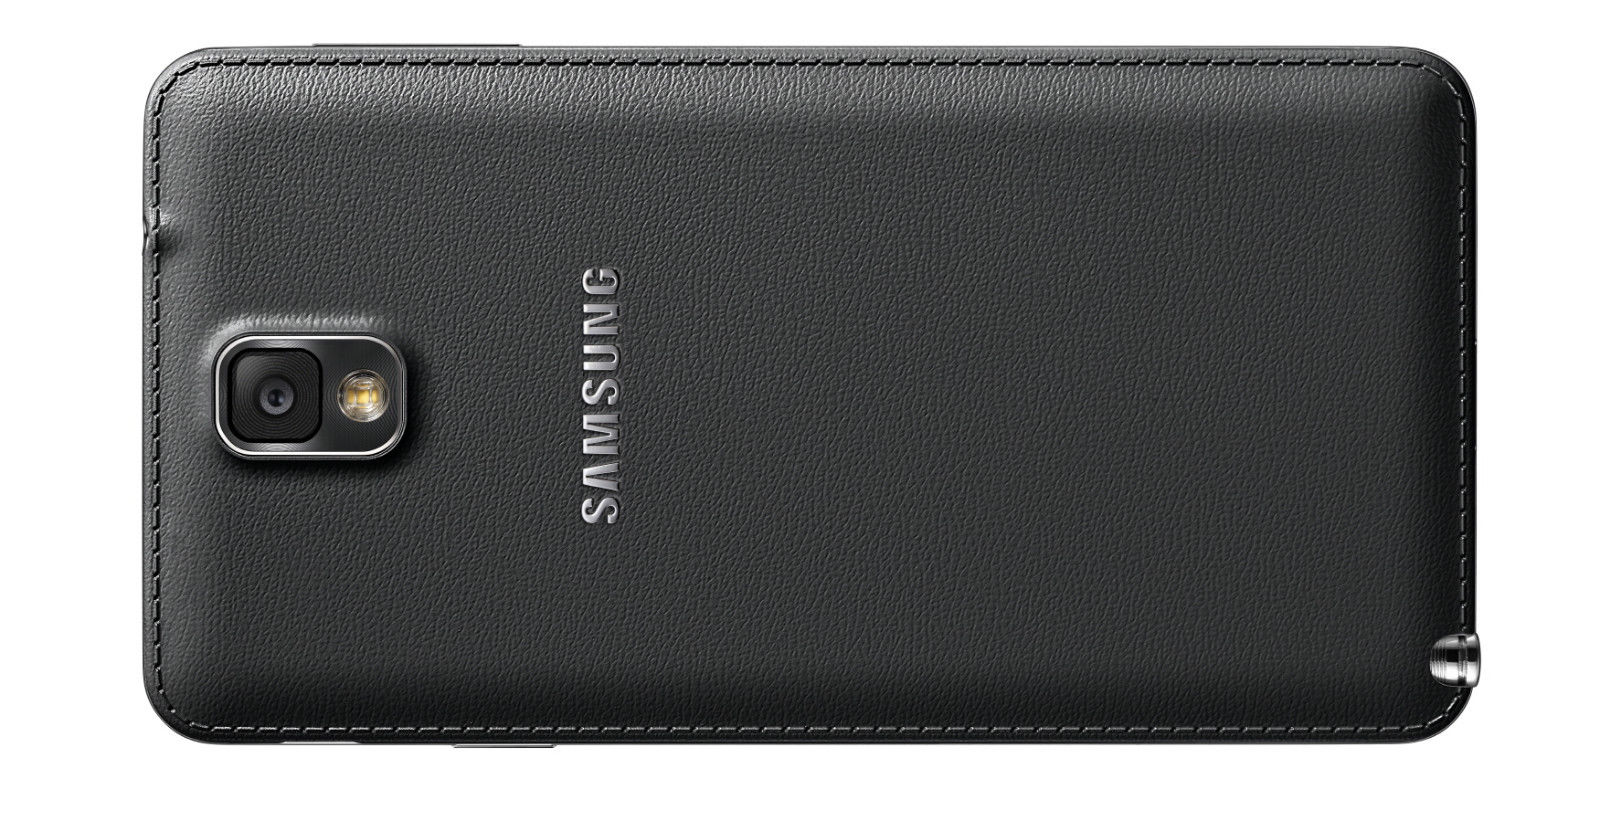 Samsung-Galaxy-Note-3-III-32GB-SM-N900T-4G-GSM-Unlocked-Android-Smartphone